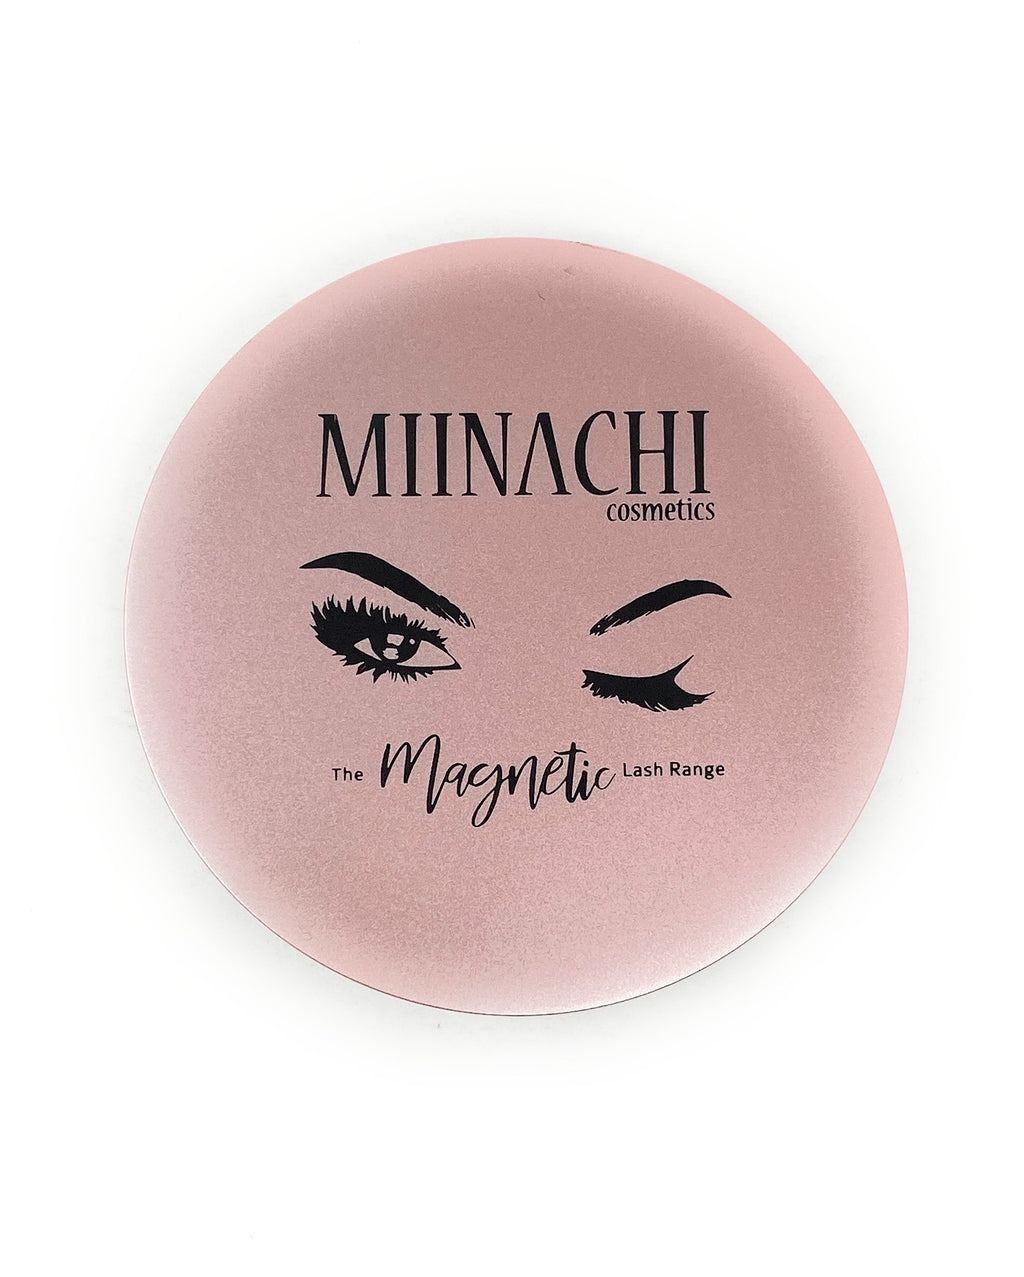 Magnetic Lash in the style Perfect, Fluffy, Reusable, Flexible, Lightweight Lashes with Mirror